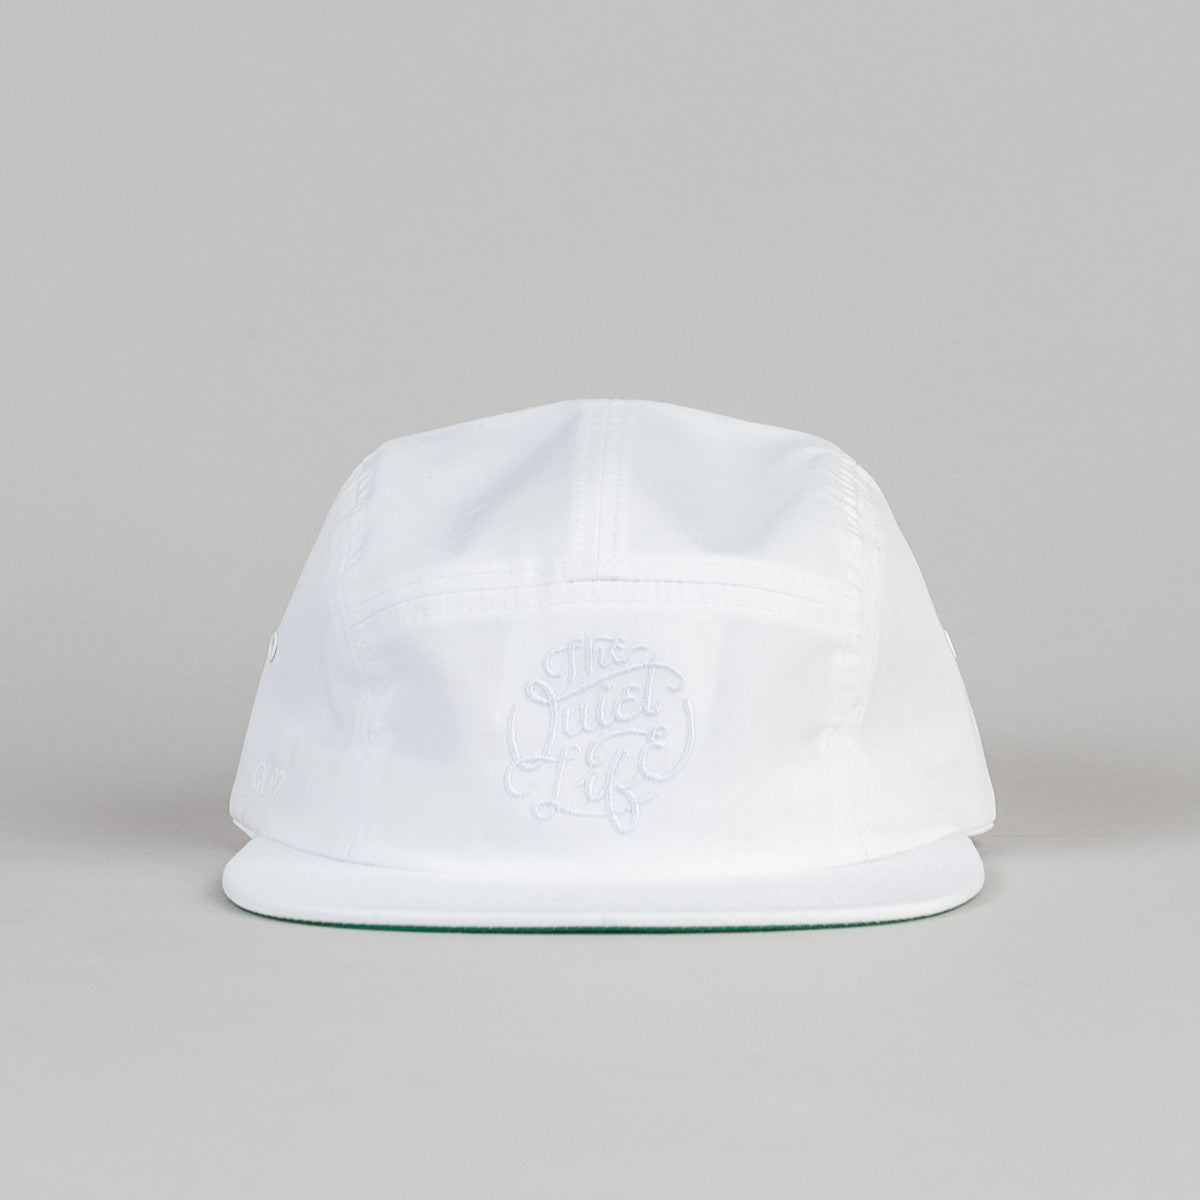 The Quiet Life Court 5 Panel Cap - White